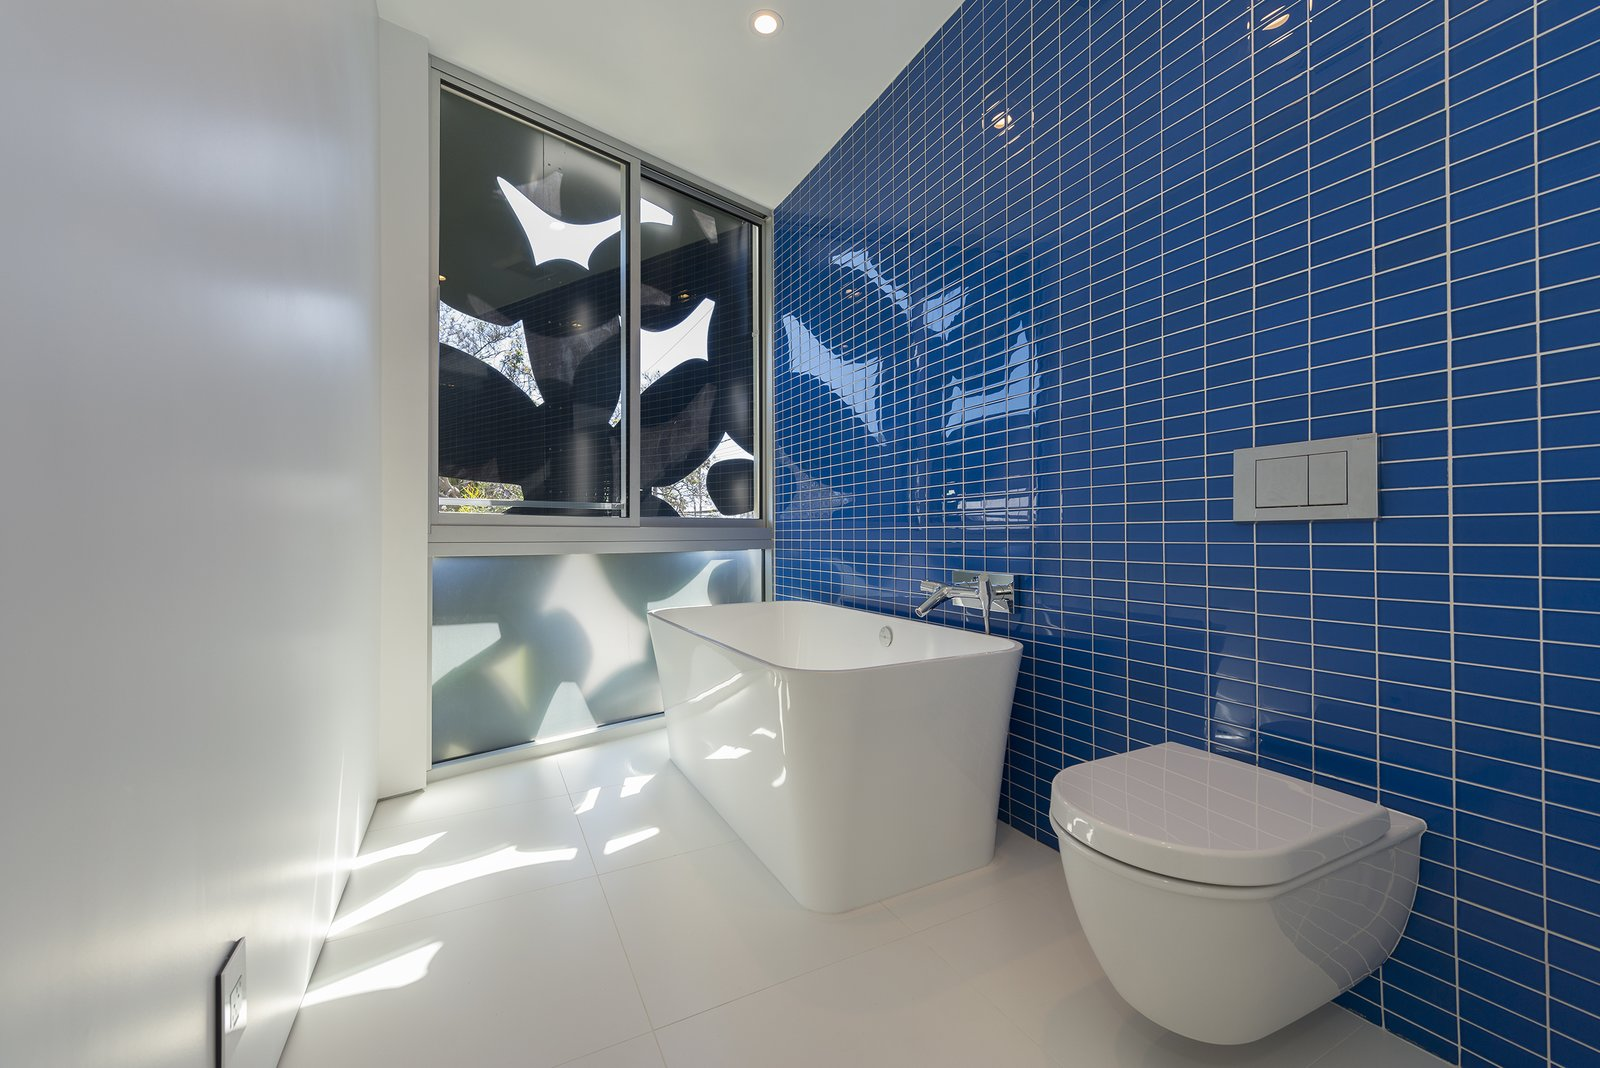 Bath Room, Porcelain Tile Floor, Vessel Sink, Freestanding Tub, Ceiling Lighting, Glass Tile Wall, One Piece Toilet, and Open Shower Glass-tile and porcelain bathroom  4016 Tivoli by Cameron McNall